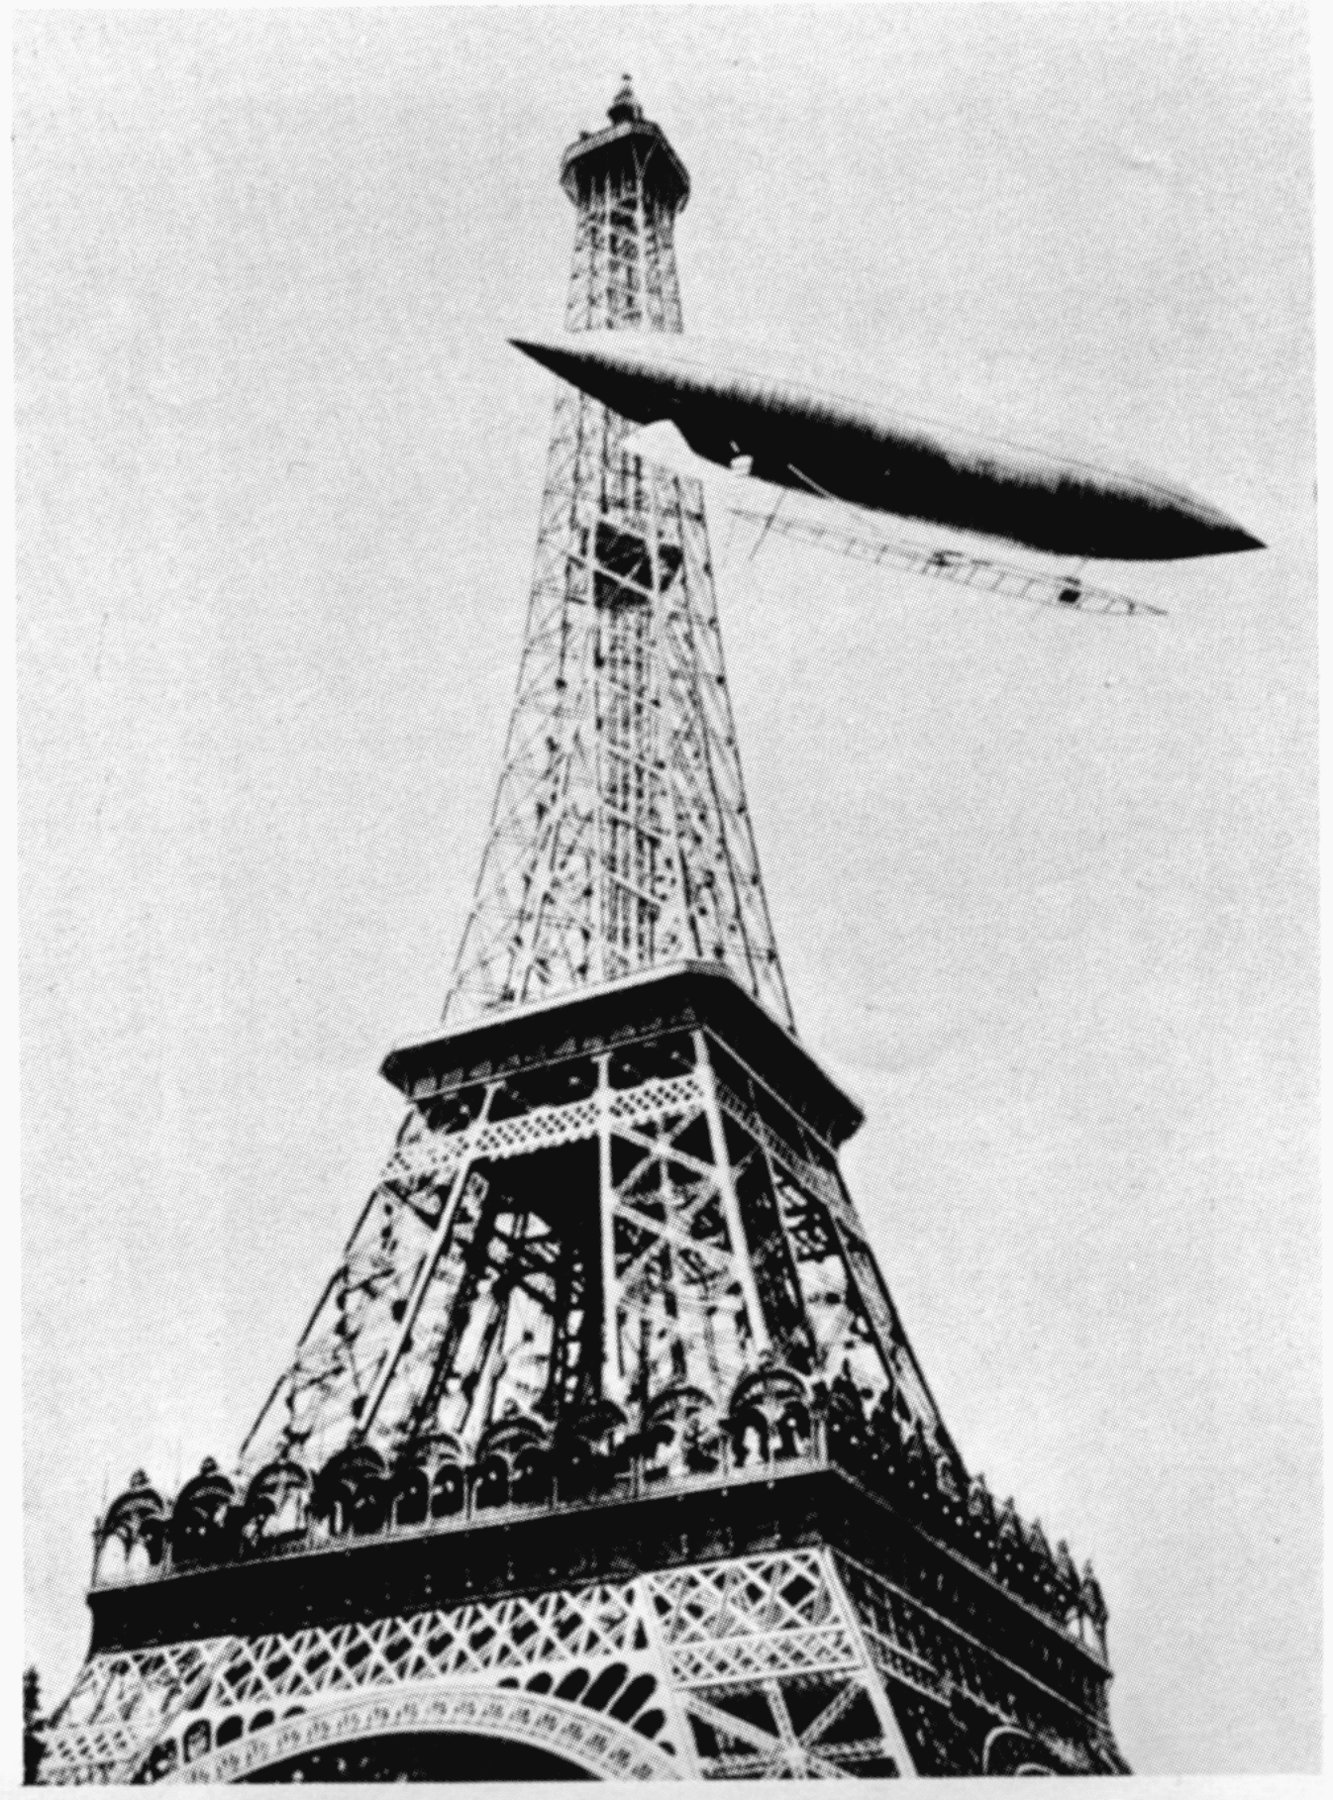 Figure 7: Alberto Santos –Dumont circling the Eiffel Tower. Reproduced in Gustave Eiffel, La tour Eiffel en 1900, p. 263.